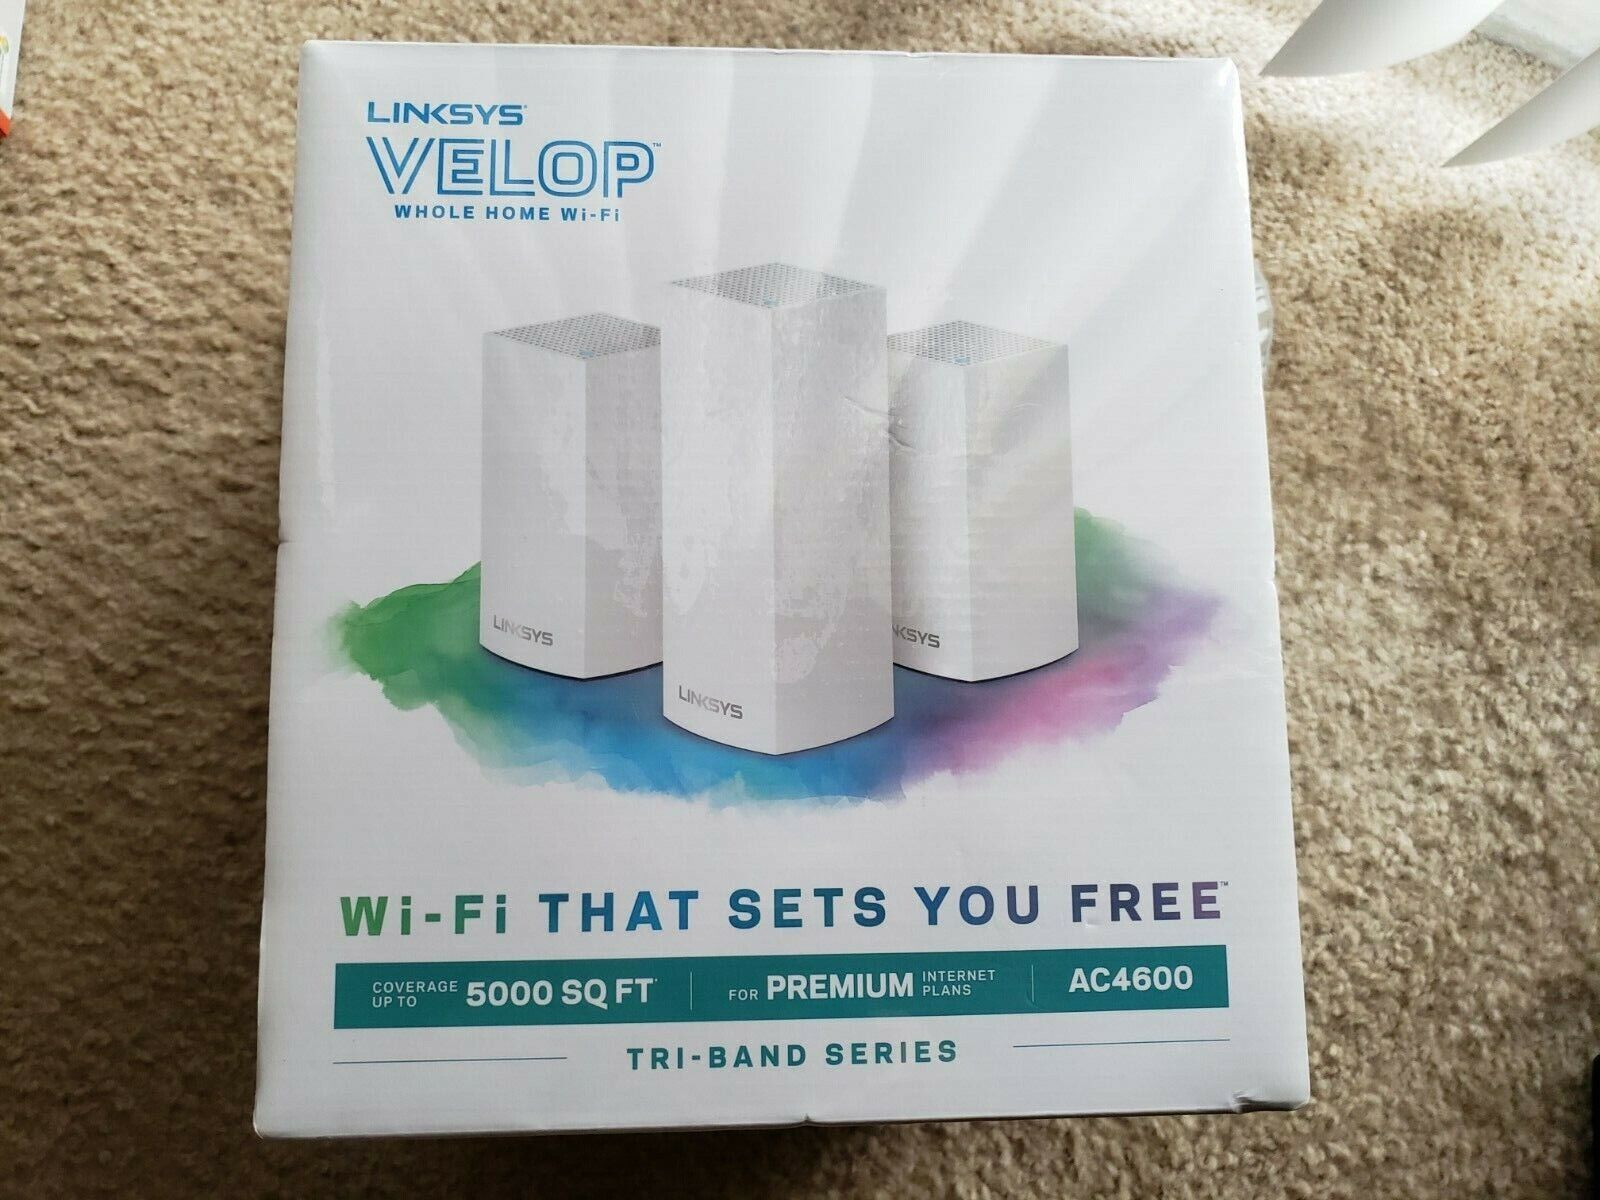 Linksys Velop Ac4600 Whole Home WiFi System Tri-band Series Vlp0203bf - $179.88